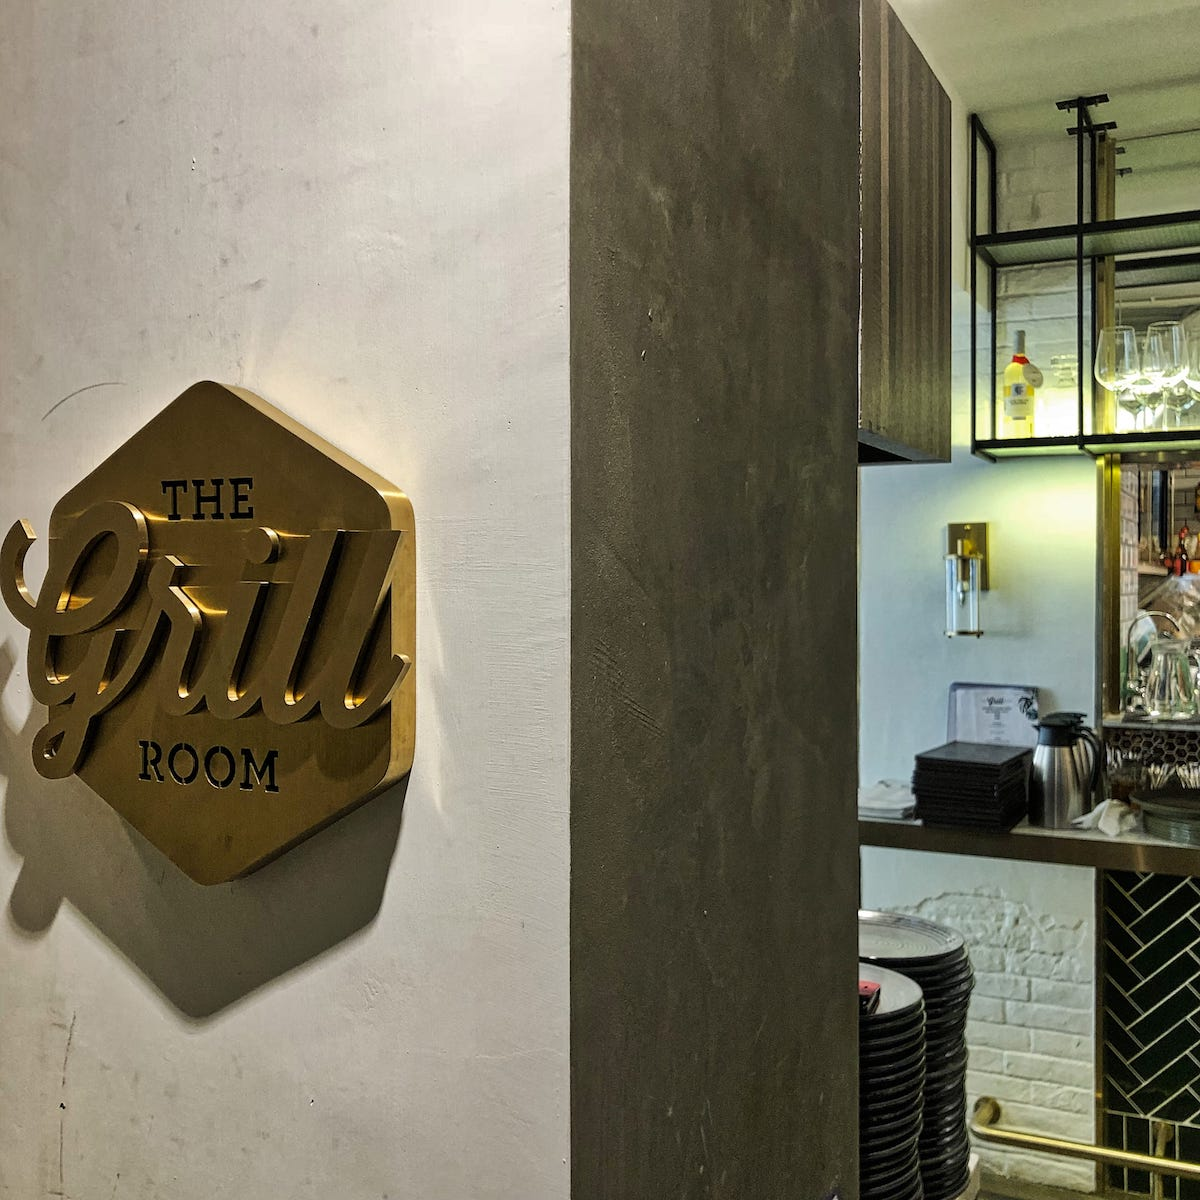 the Grill Room 餐廳環境入口